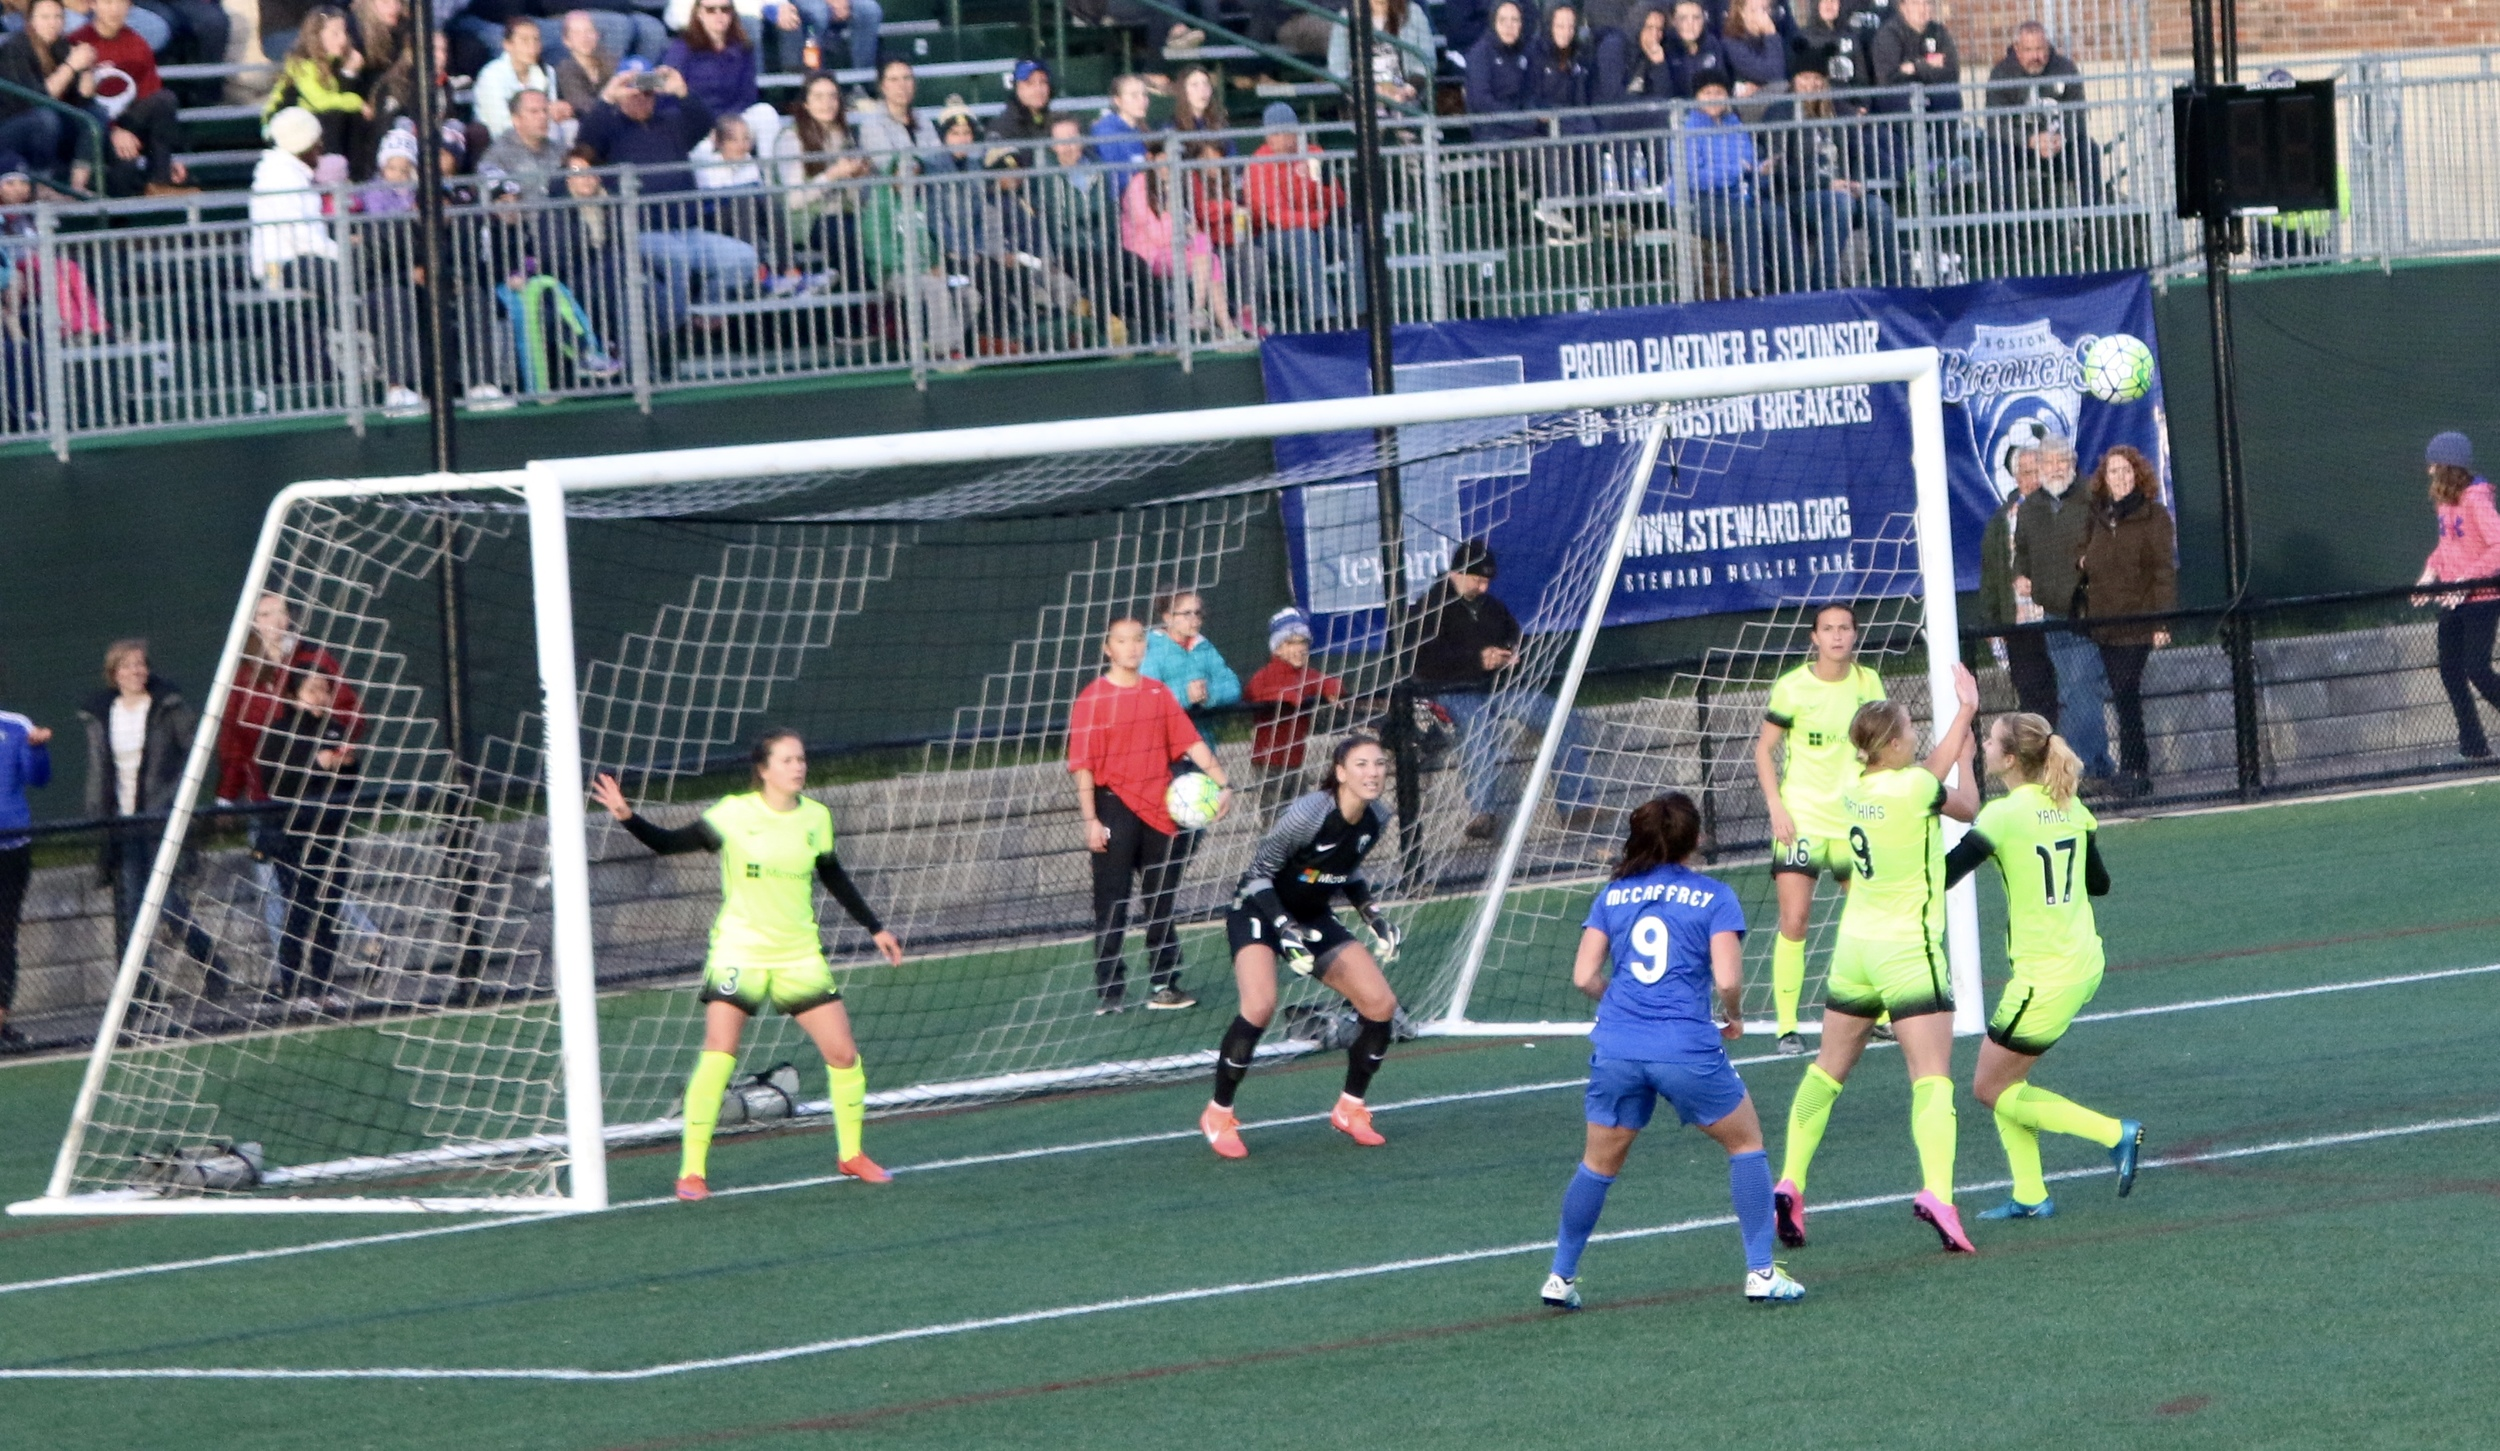 I wanted to photoshop out the ball girl in red and the ball in the air so that it looked like there was a ball in the net behind hope solo.